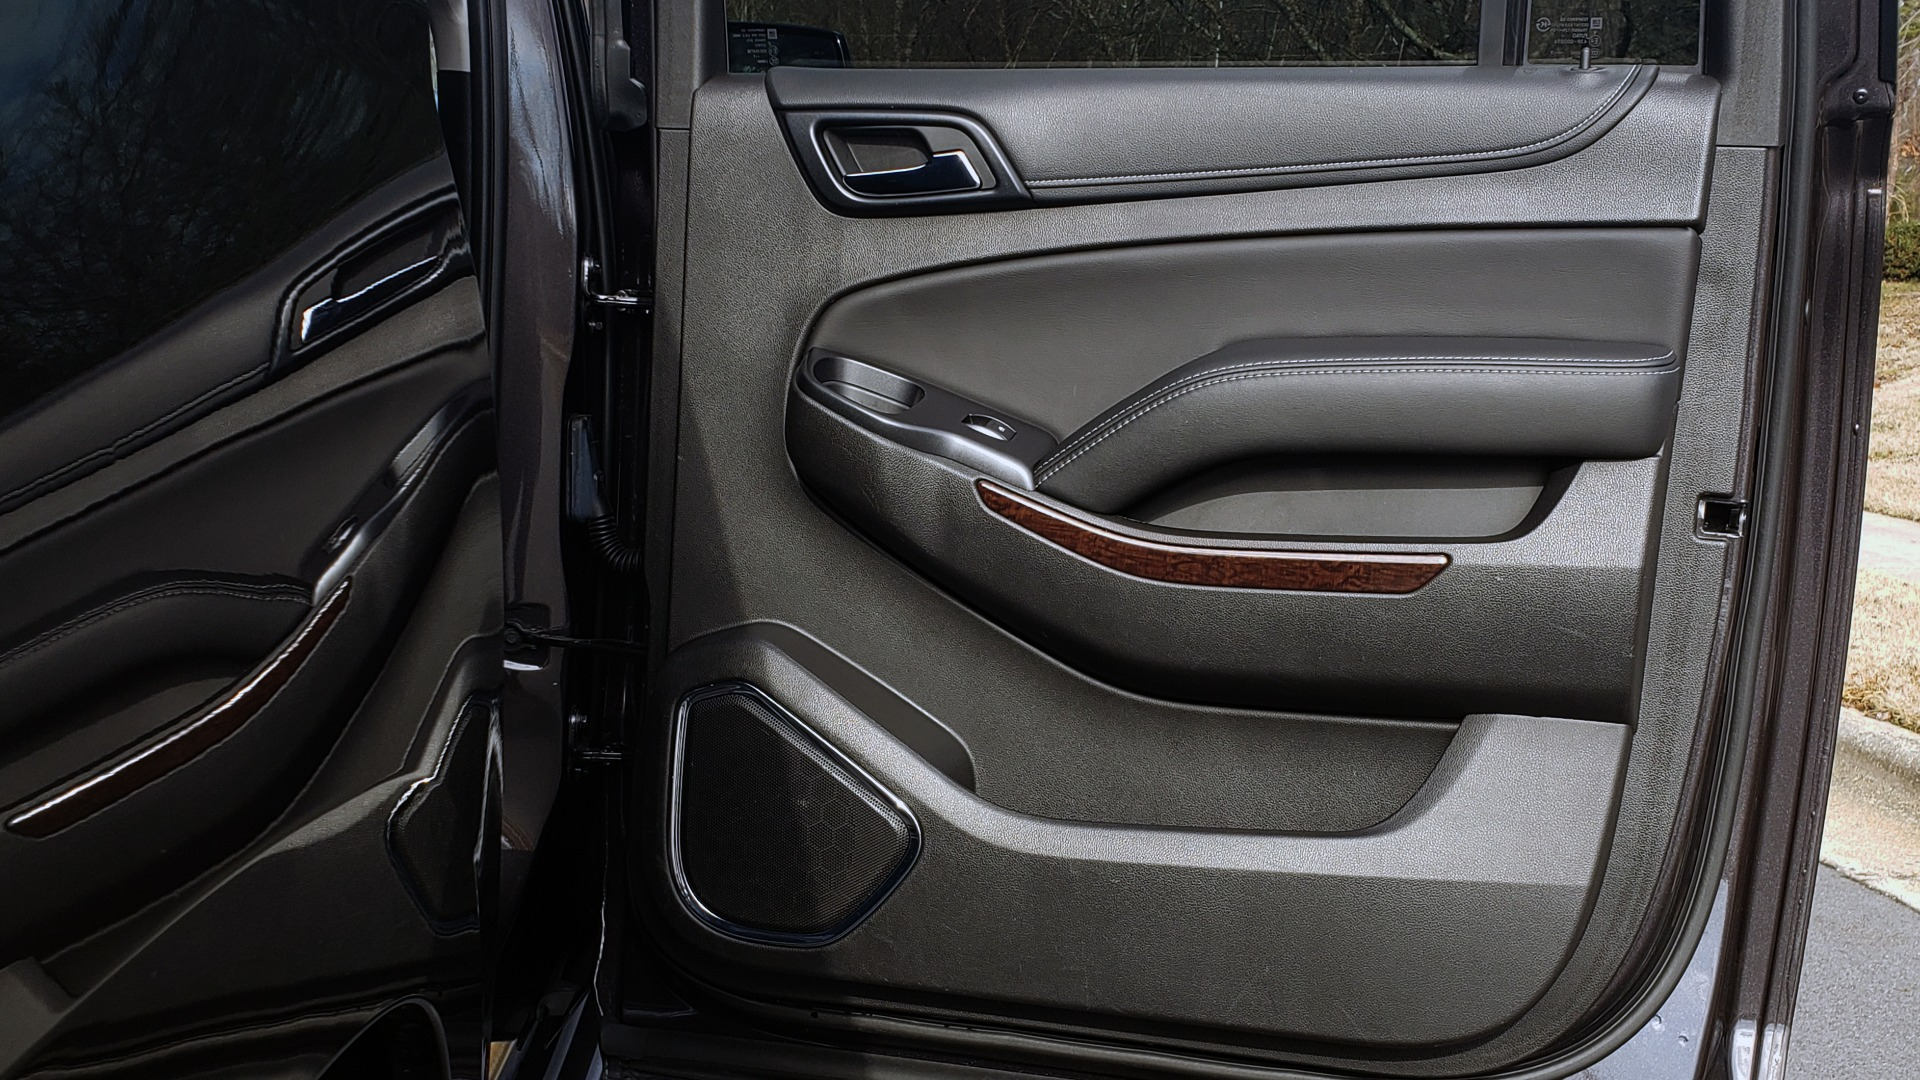 Used 2017 GMC YUKON XL SLT 4X4 / NAV / SUNROOF / BOSE / 3-ROW / REARVIEW for sale Sold at Formula Imports in Charlotte NC 28227 85